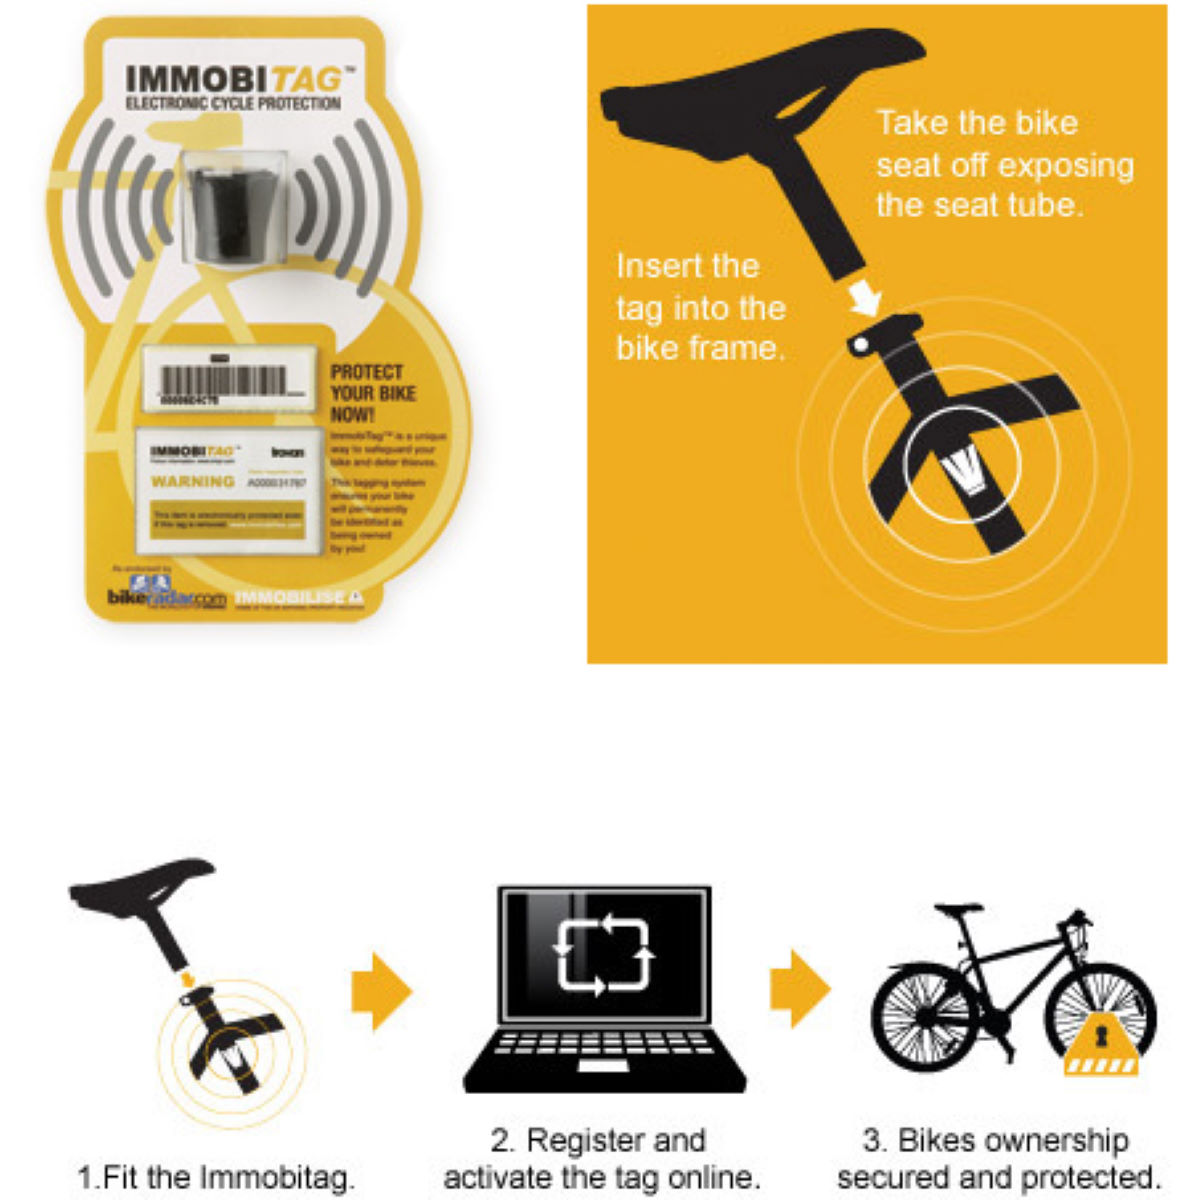 Immobilise.com ImmobiTag Electronic Cycle Protection Kit